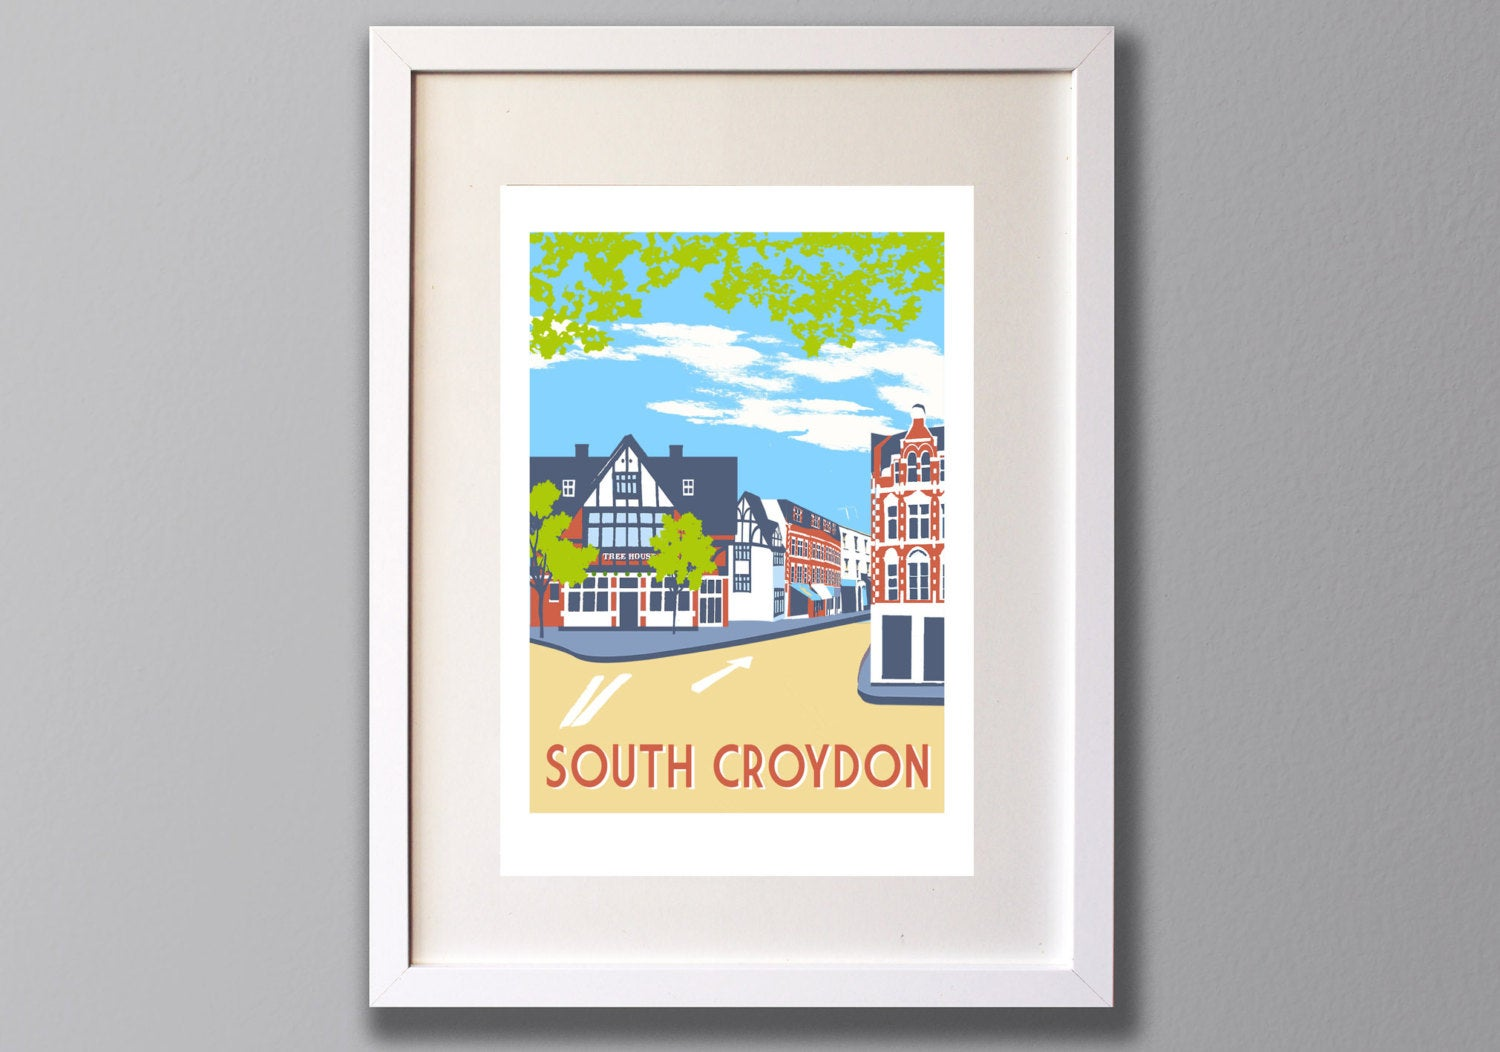 South Croydon - A3 Giclee print - Limited Edition - (UN)FRAMED - Red Faces Prints